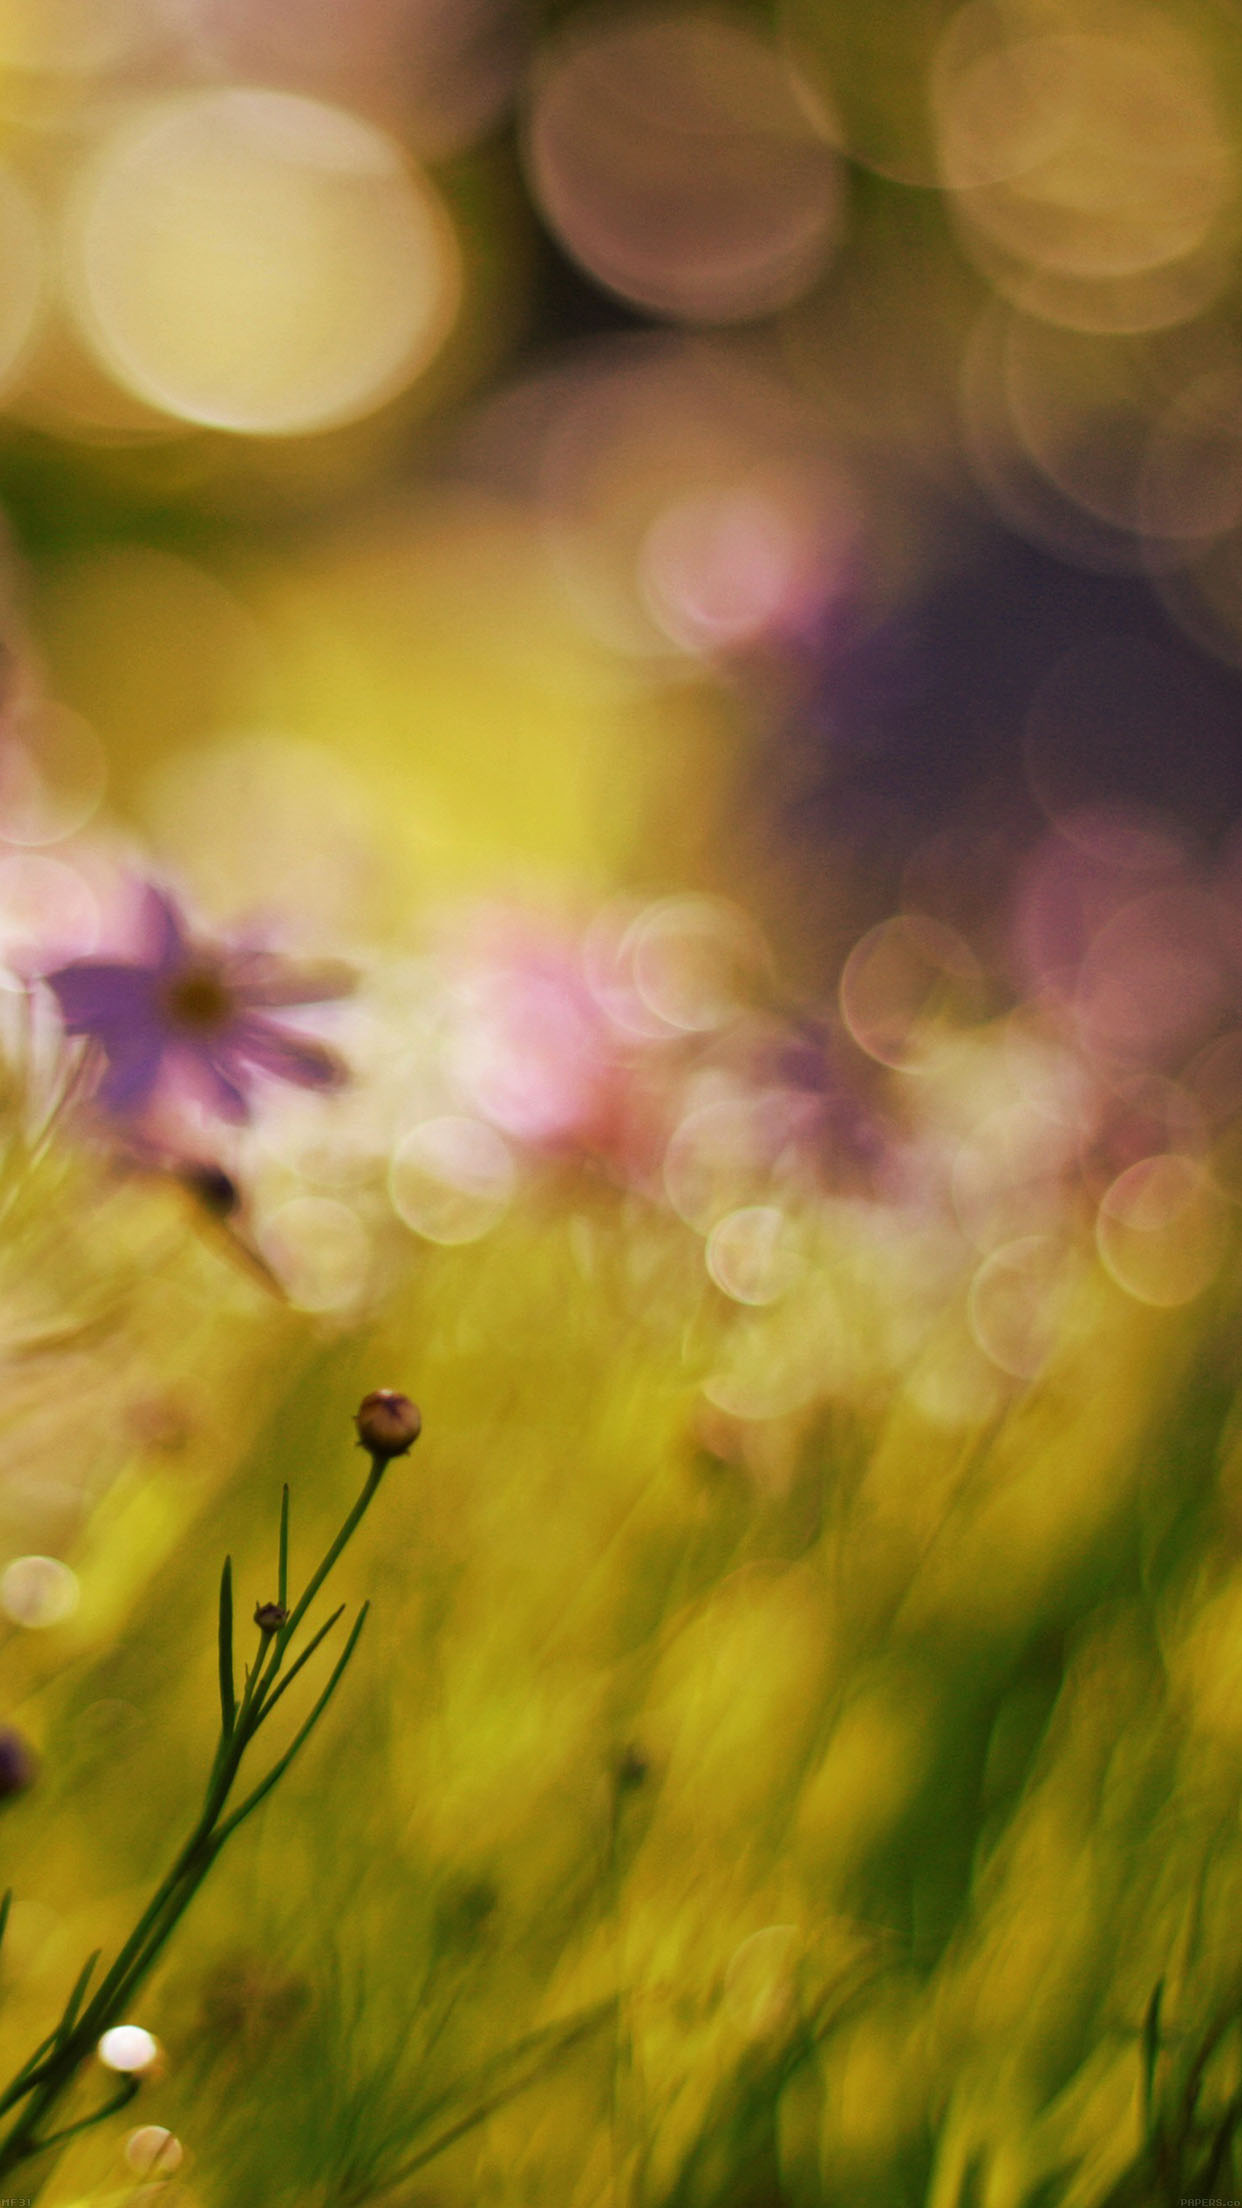 Flower Bokeh Spring Days Sweet Android wallpaper